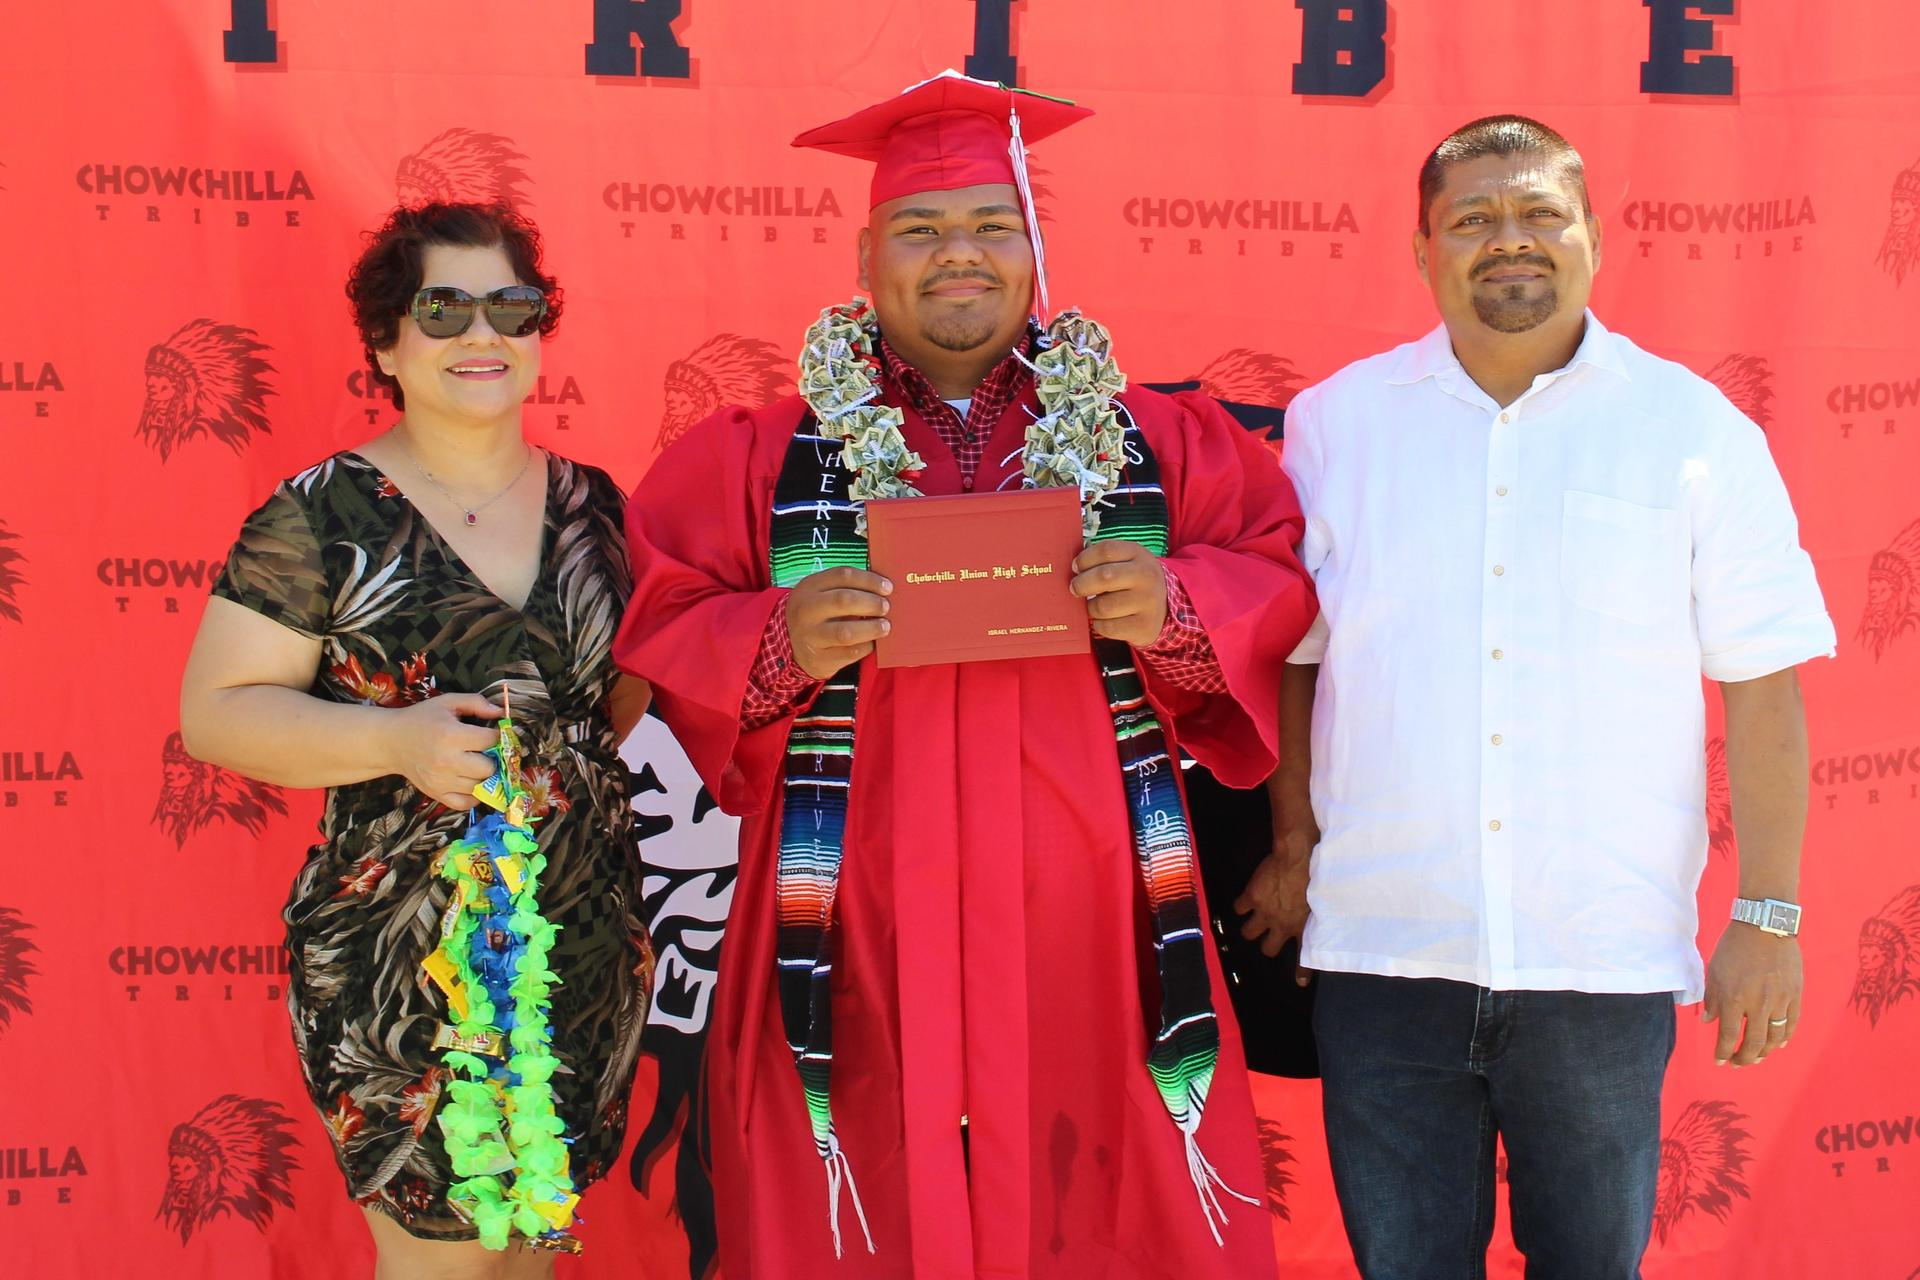 Israel Hernandez and family